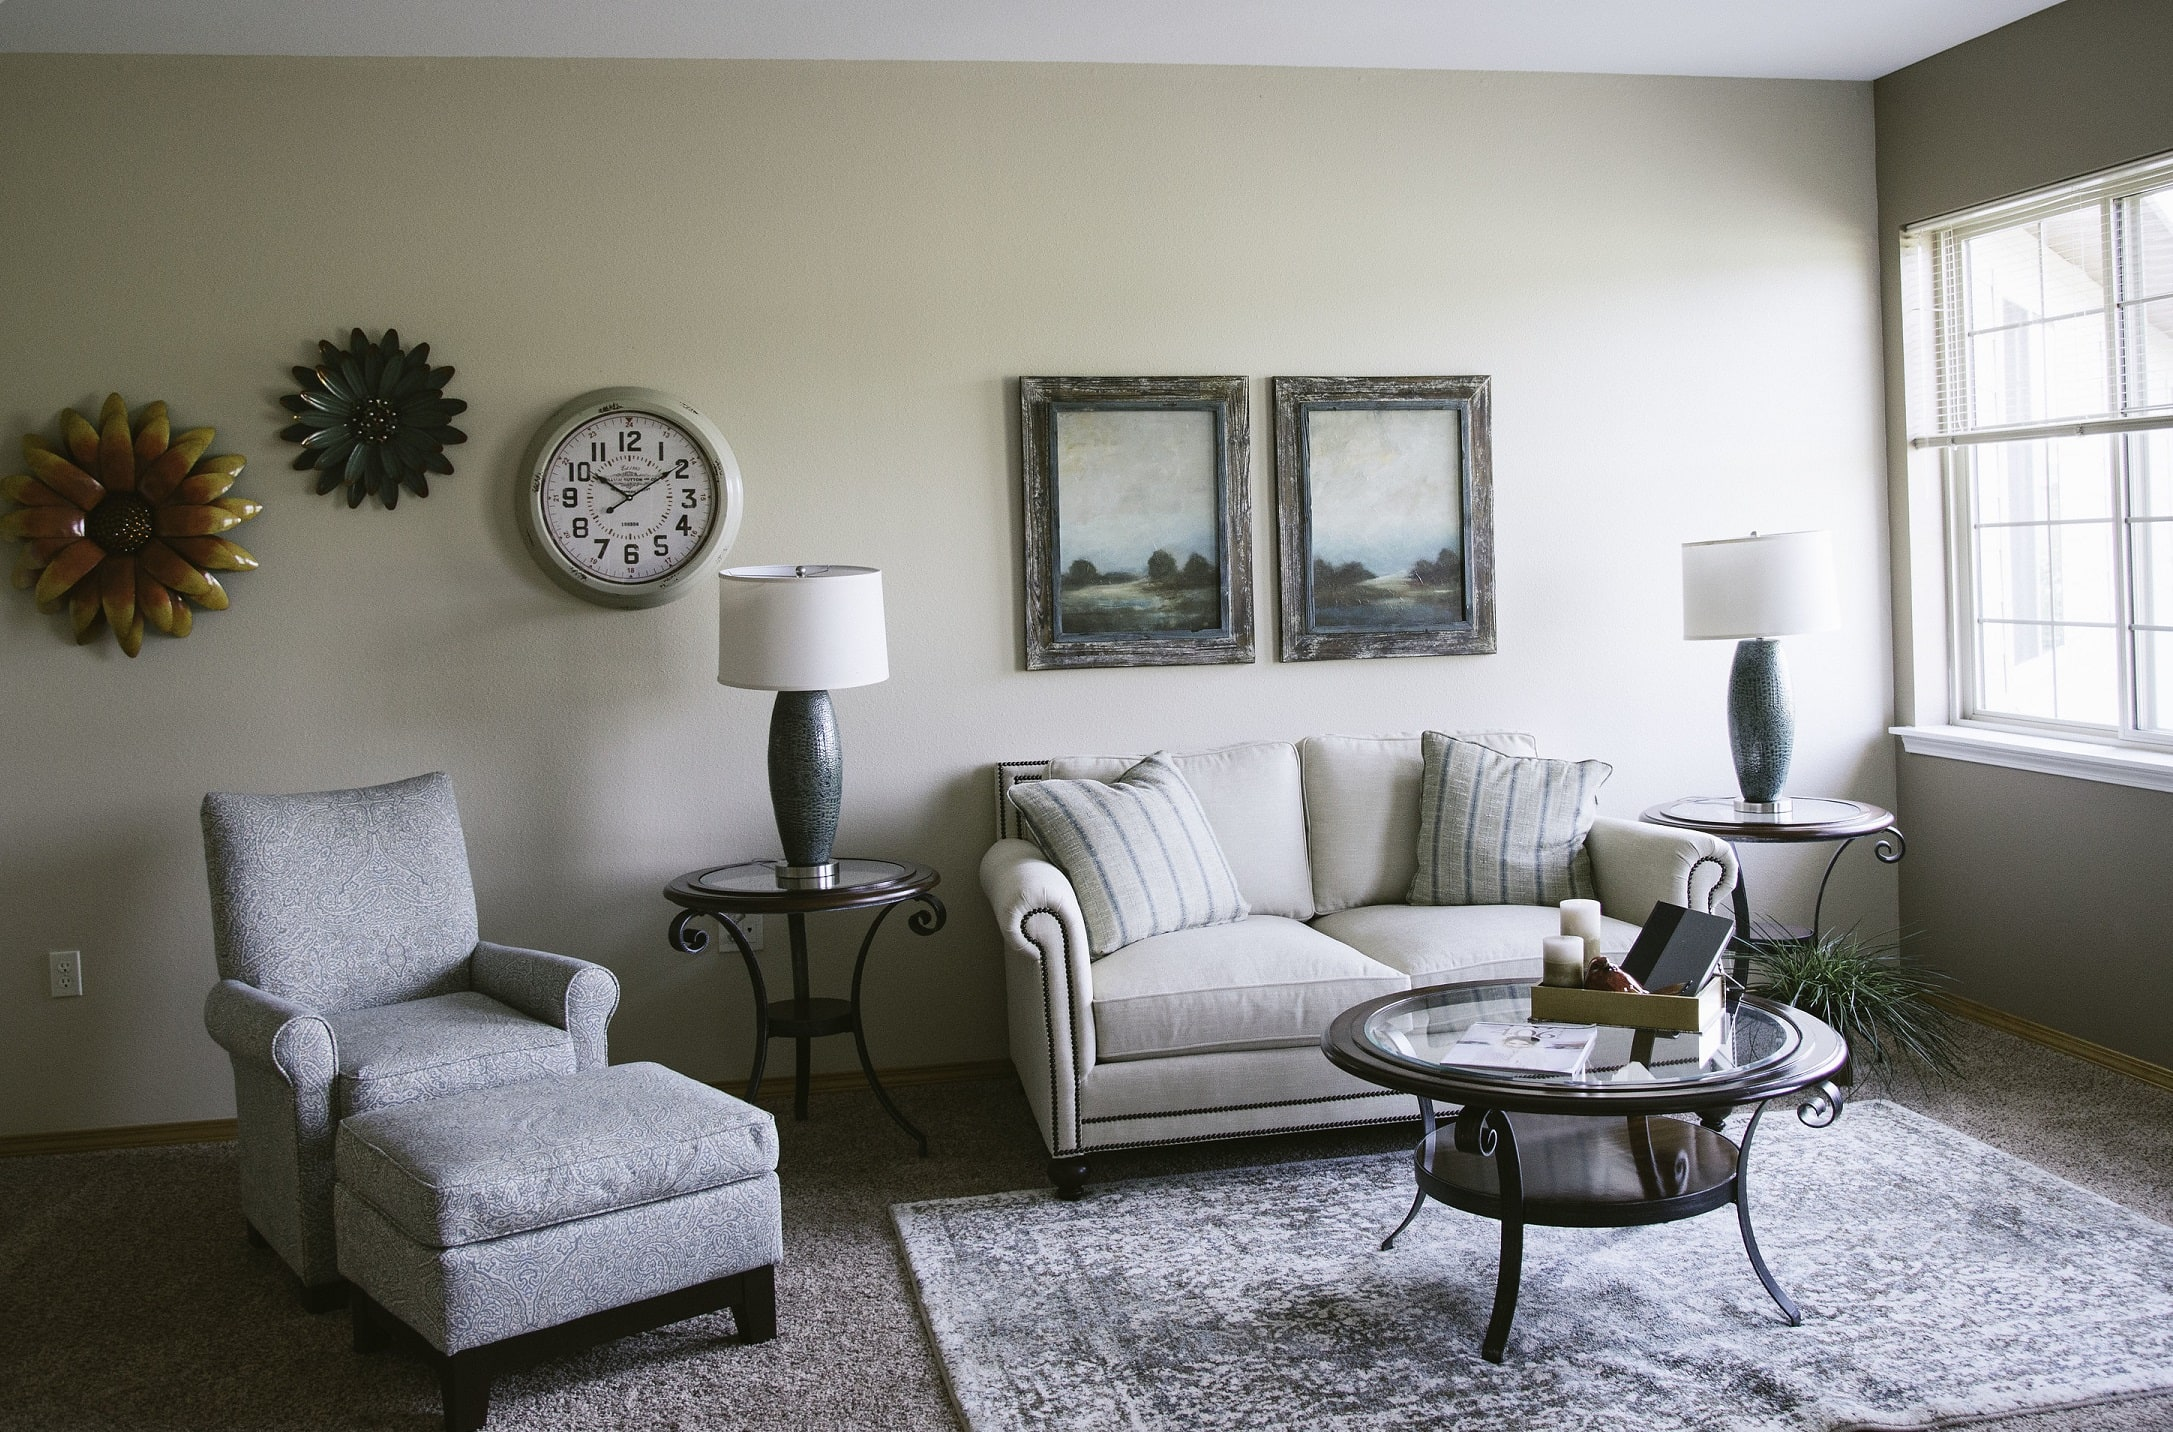 Living space of a resident apartment in our senior living facility in Whitefish, MT